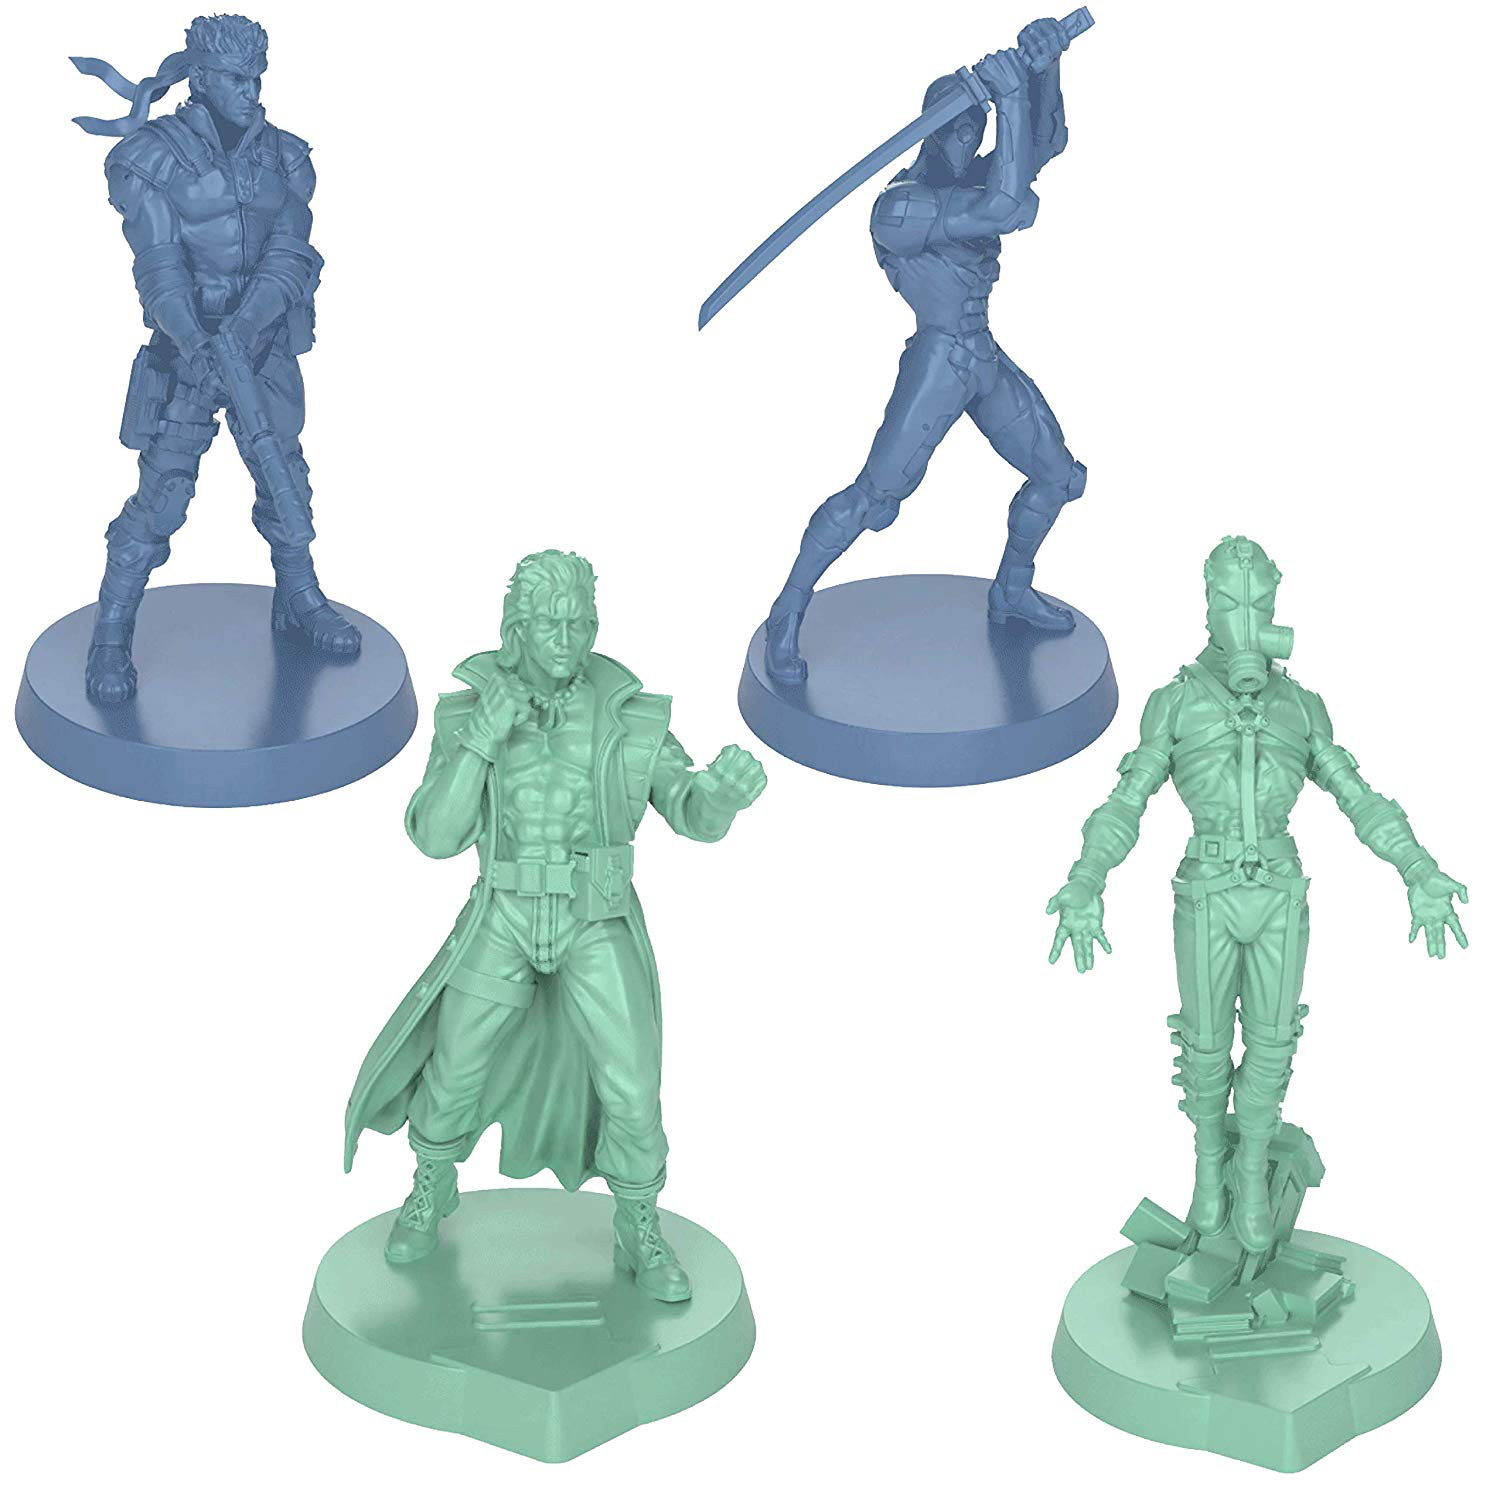 New details and images of the Metal Gear Solid Board Game